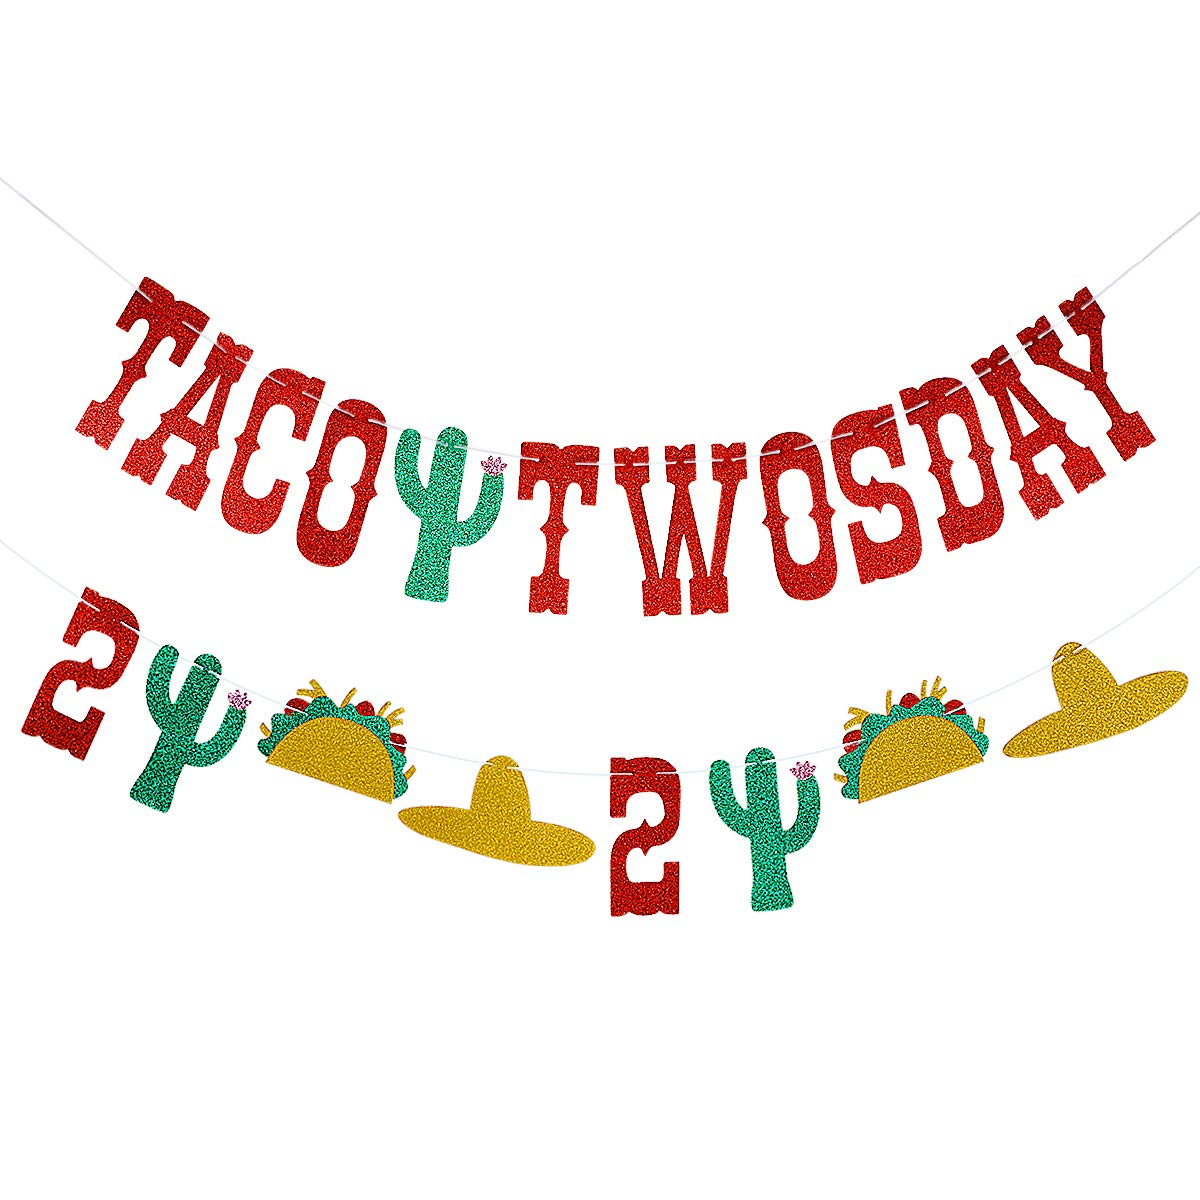 Red Glittery Taco Twosday Banner.